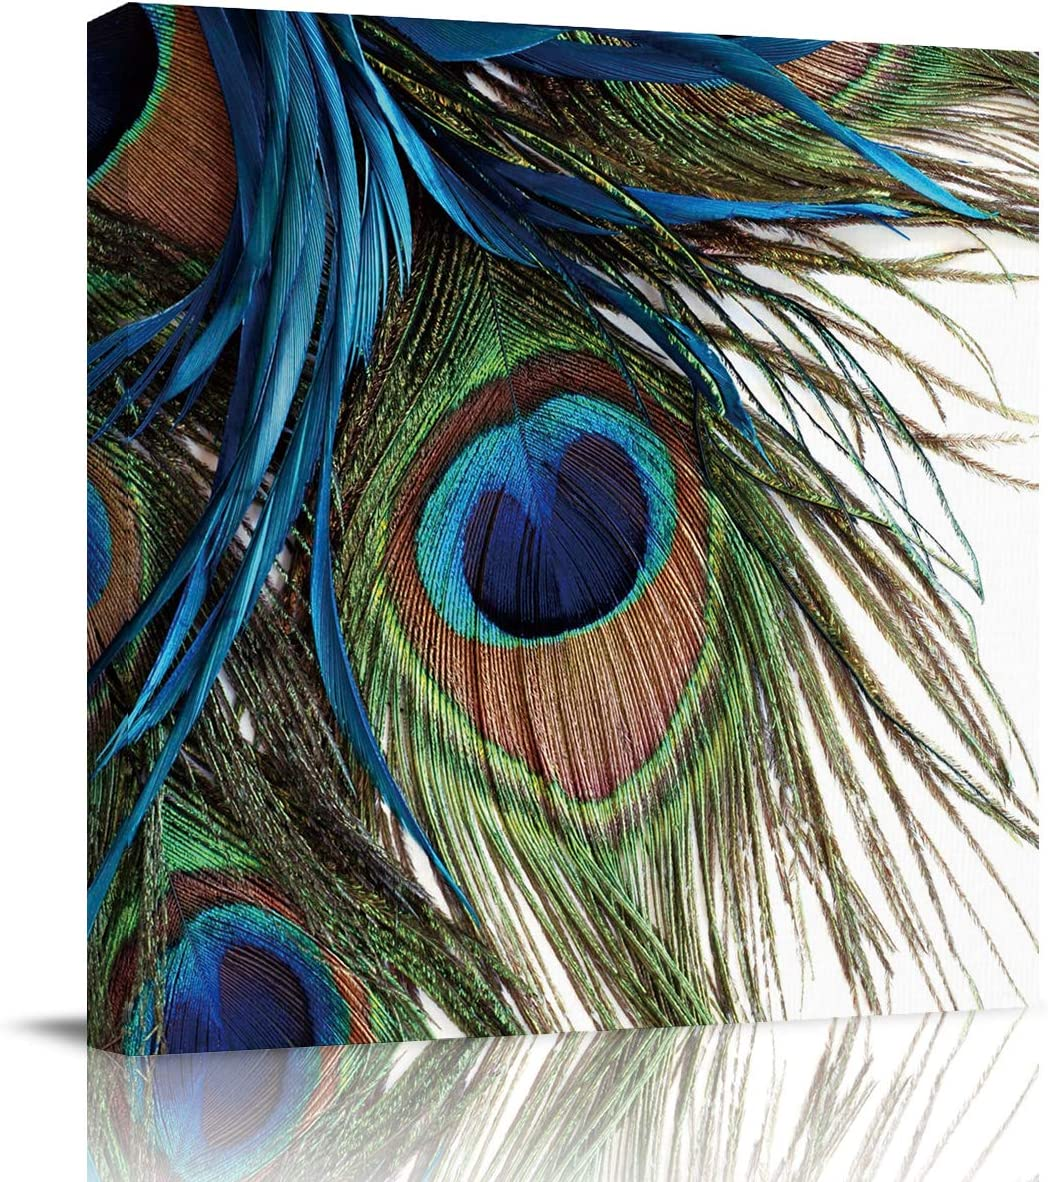 T&H XHome Wall Art Oil Paintings on Canvas Print Peacock Feather Arts Office Artwork Home Decoration Living Room Bedroom Bathroom Giclee Walls Decor,Wooden Framed Ready to Hang 12x12in